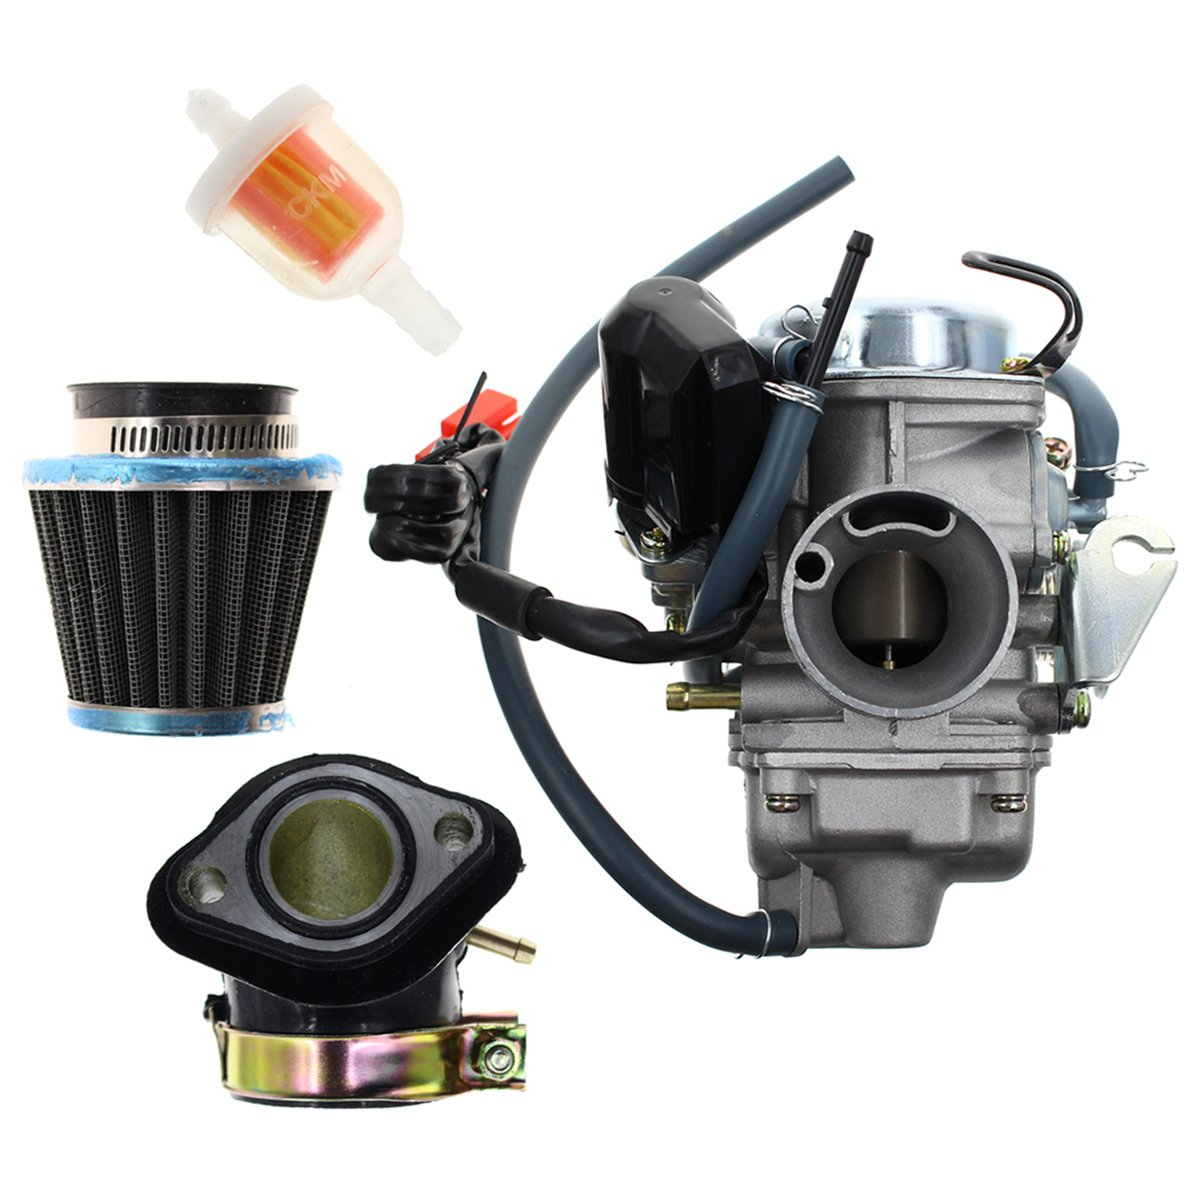 Carbhub GY6 150cc Carburetor GY6 26mm Carb for Kazuma Taotao Roketa SunL Baja Eagle Chinese Go Kart Carb with Air Filter